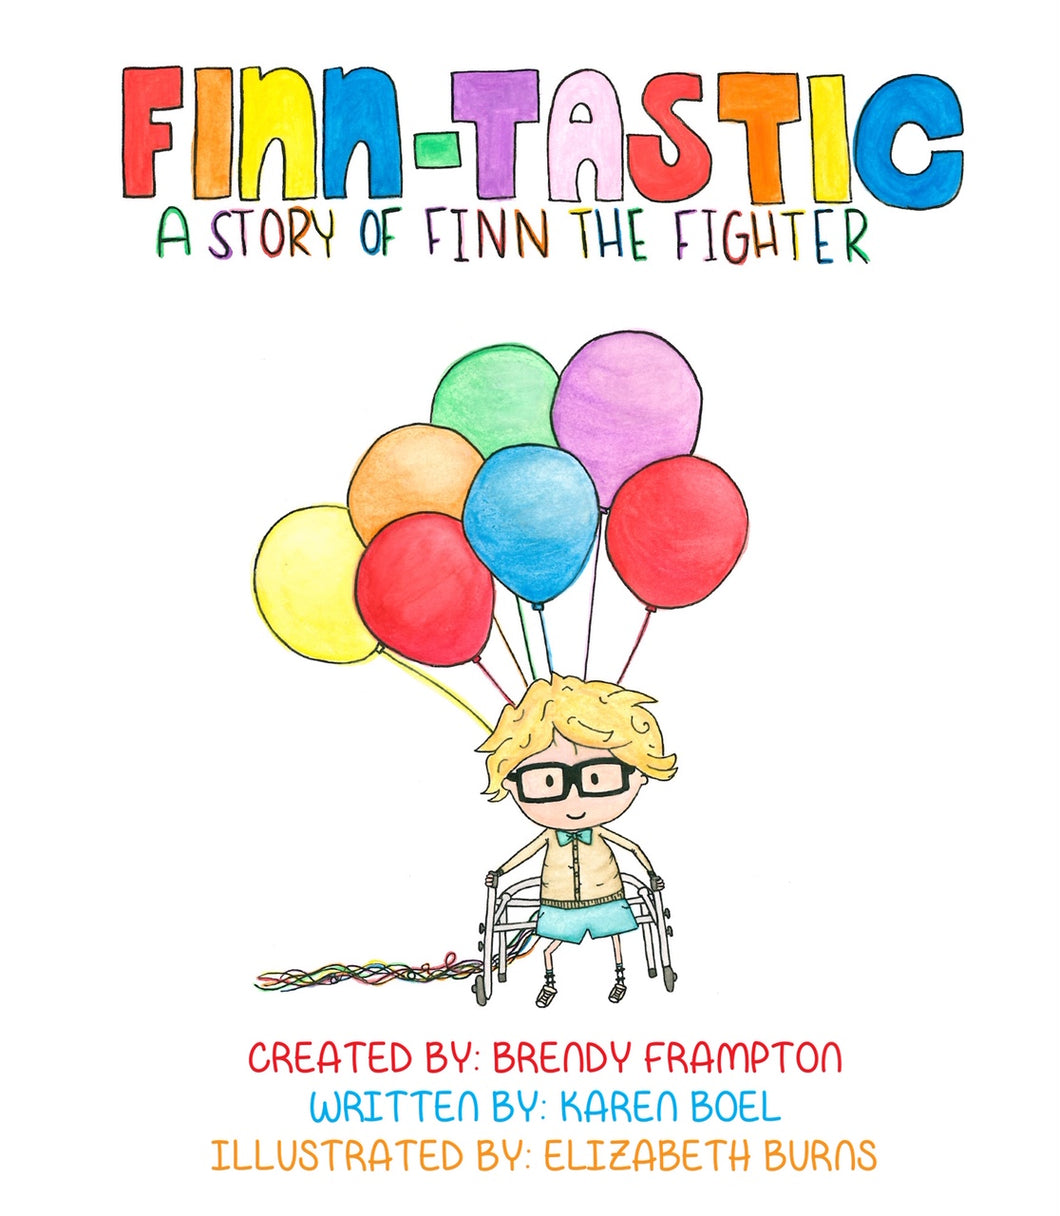 Finn-tastic, A Story of Finn the Fighter